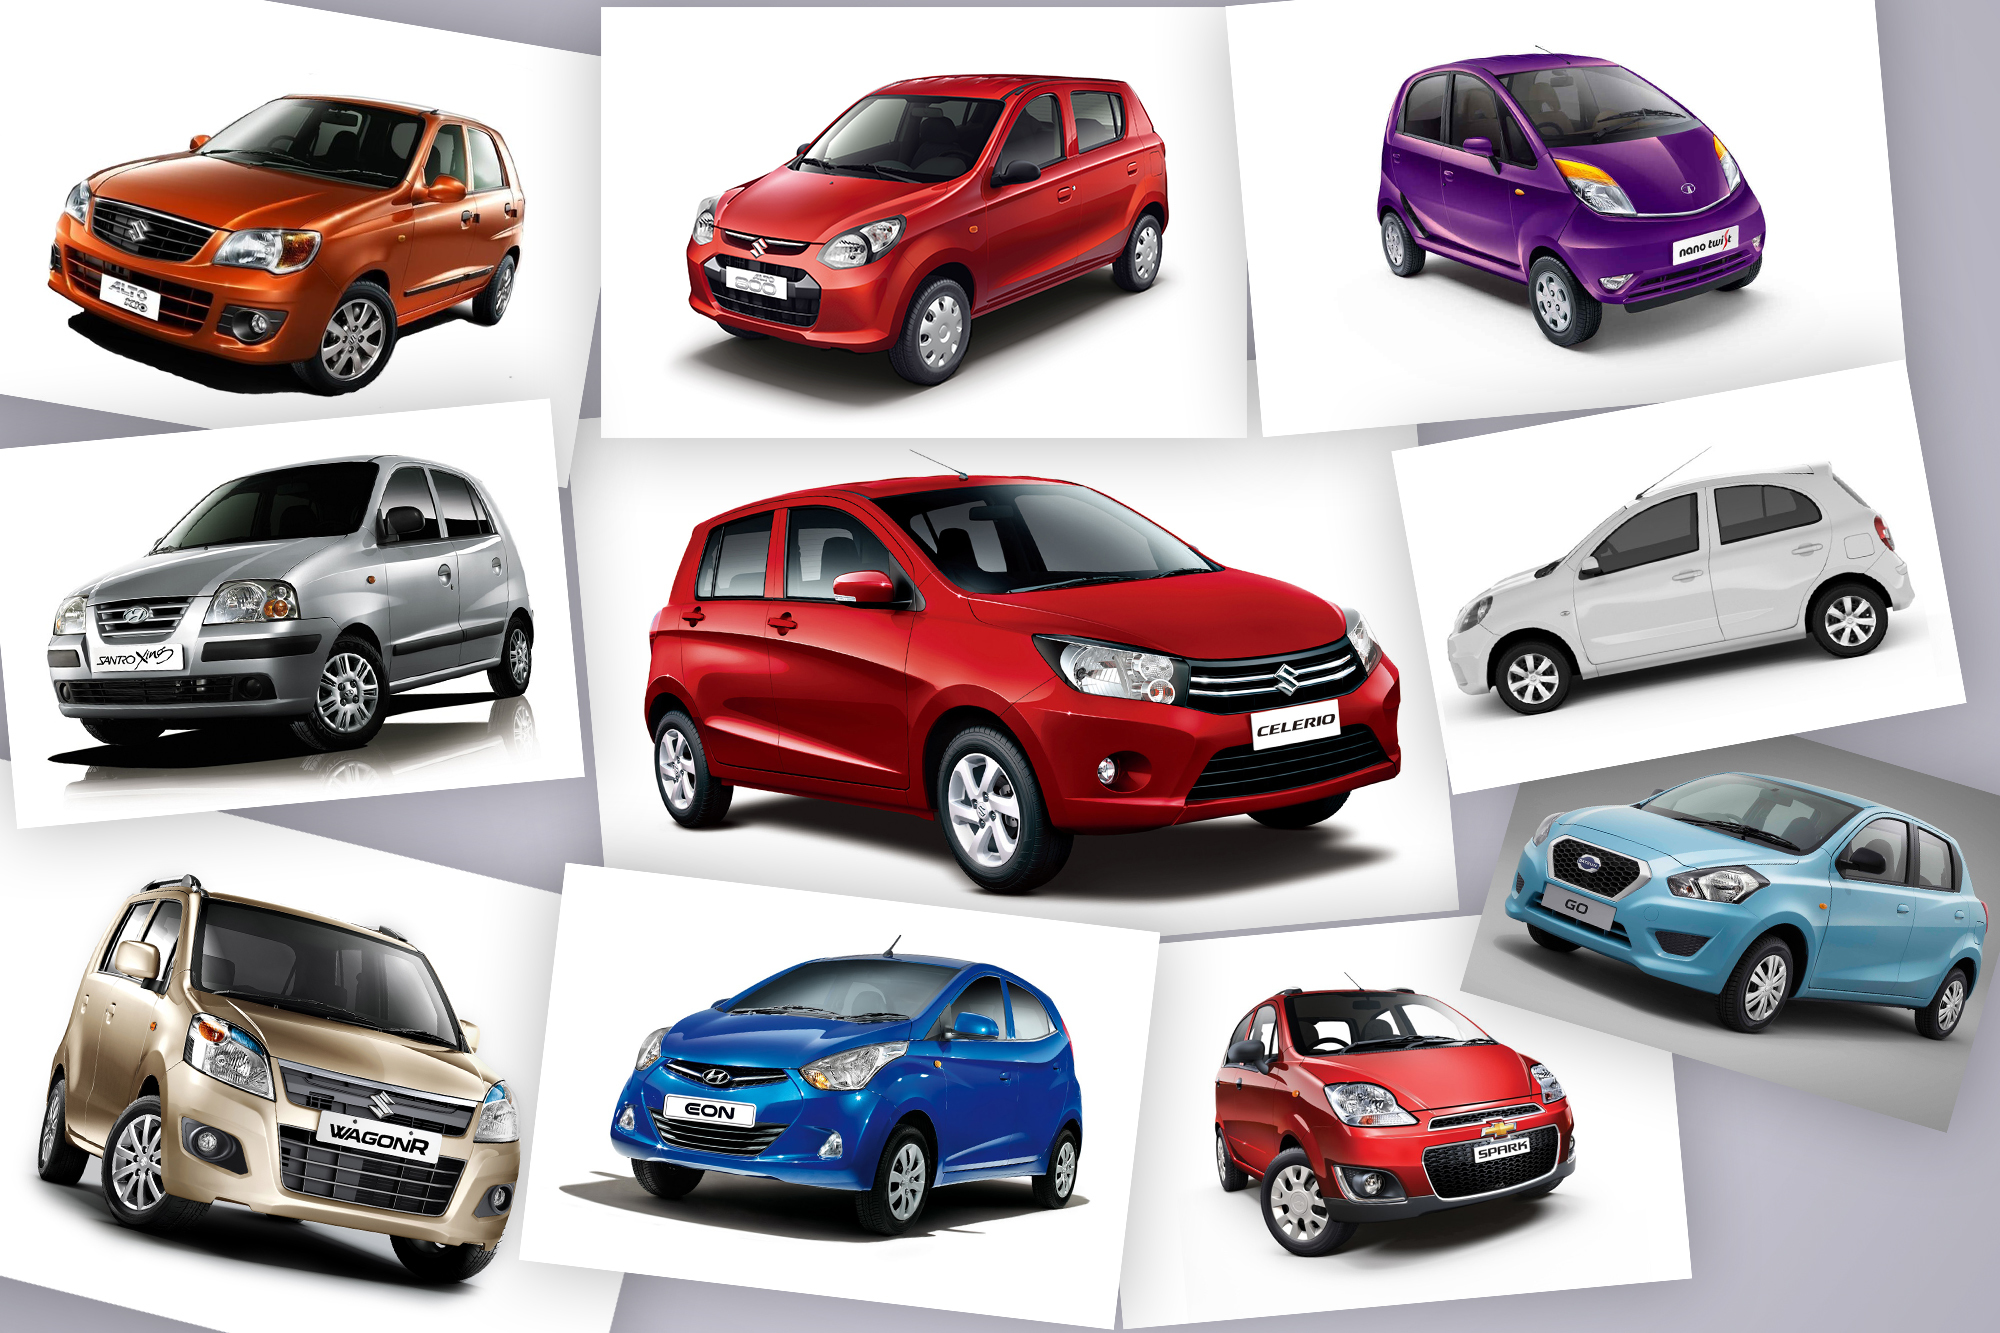 Luxurious Cars Under 45 Lakh And Above 40 Lakhs